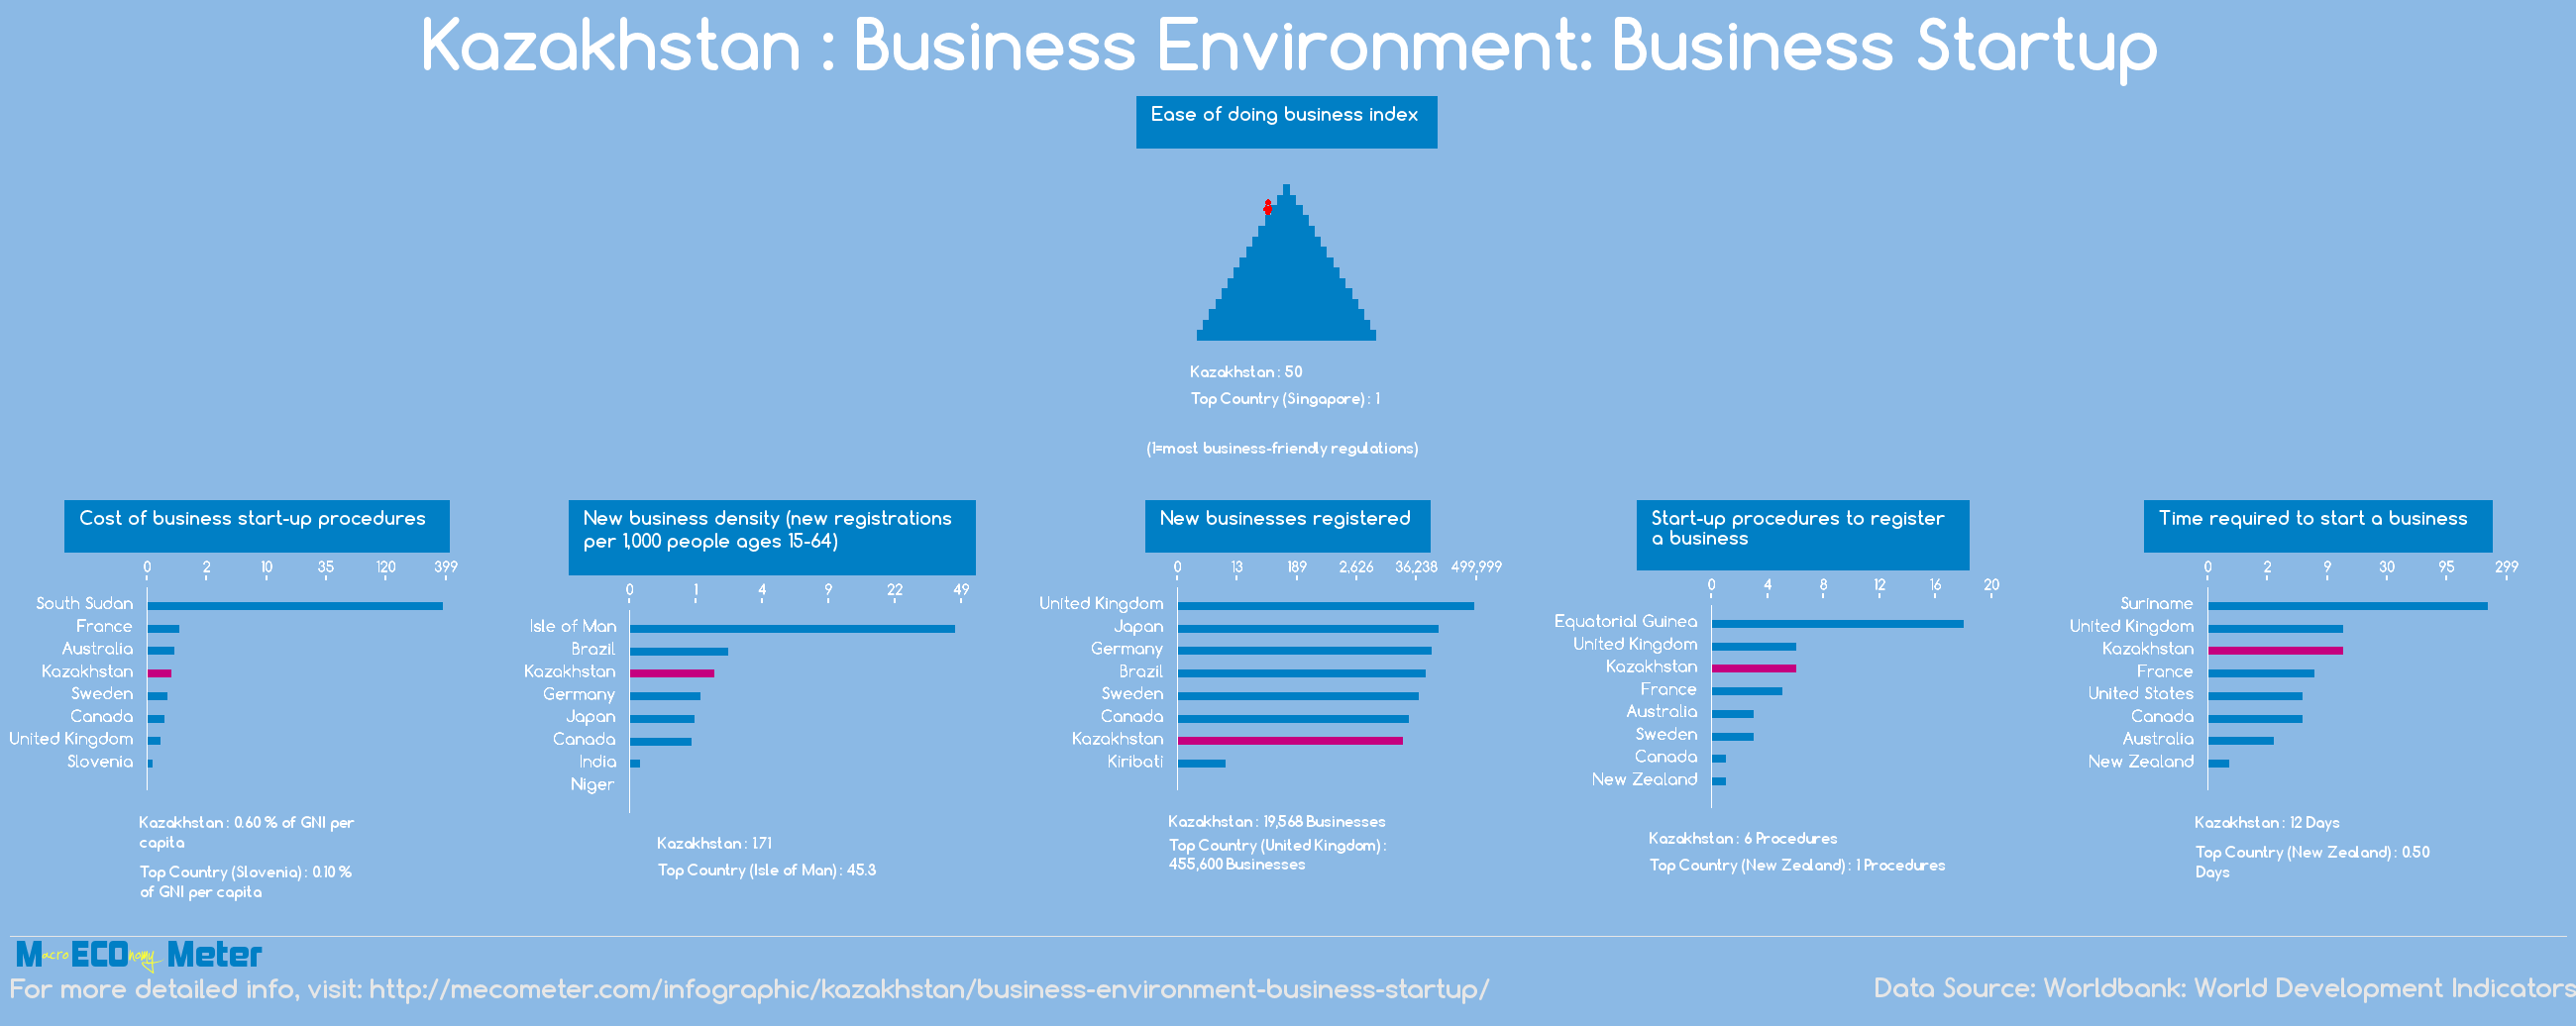 Kazakhstan : Business Environment: Business Startup